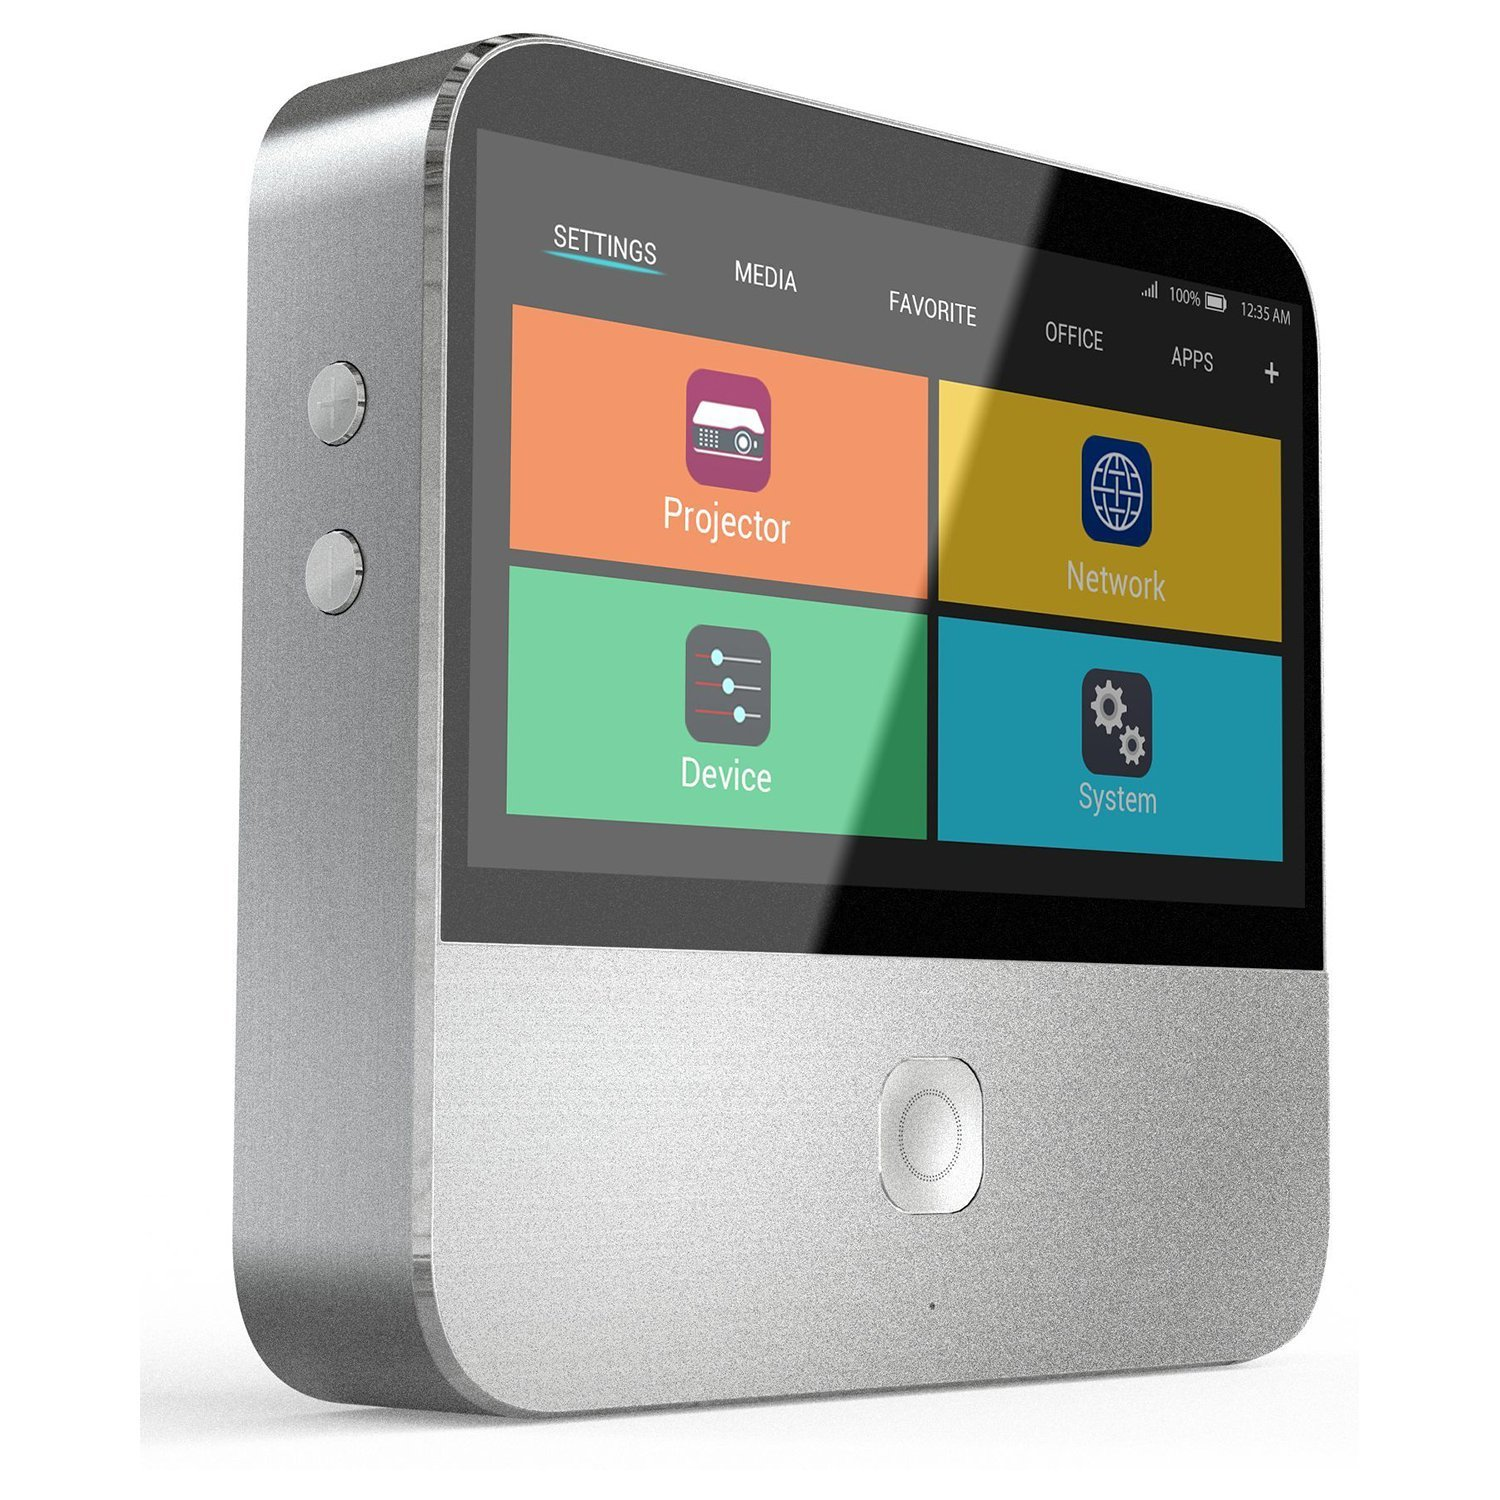 Sony Xperia zte projector verizon the only